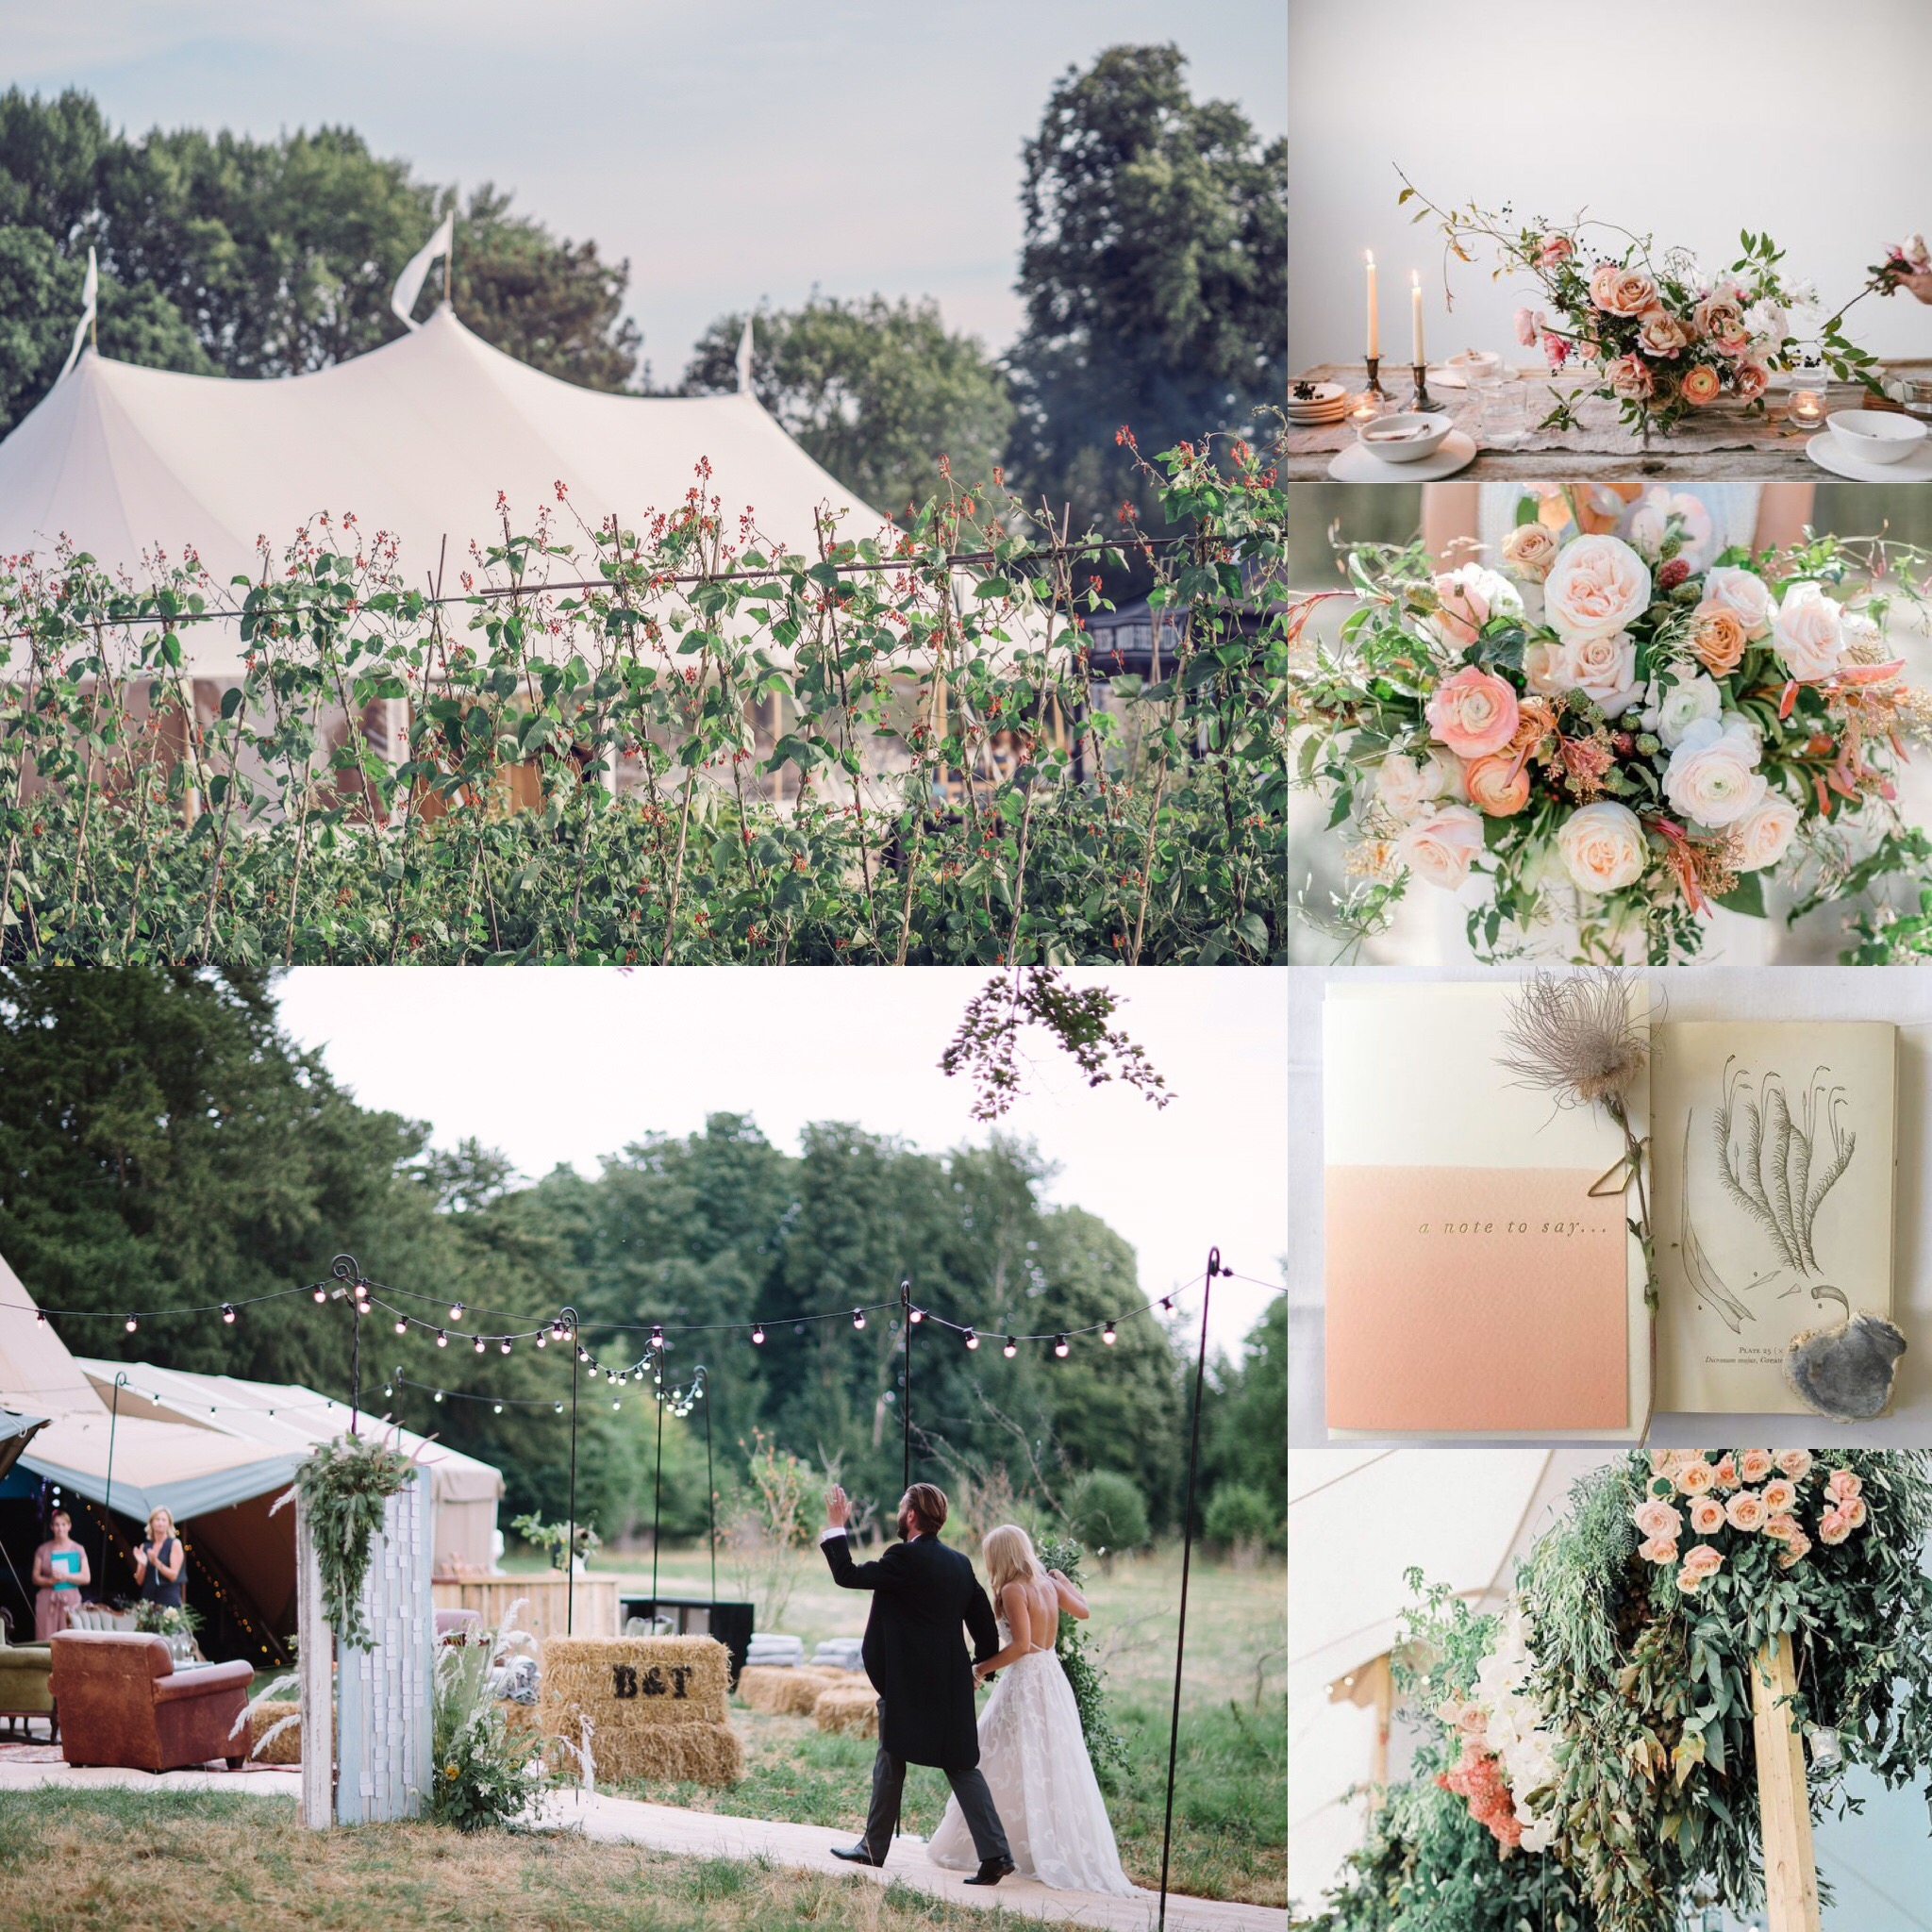 PapaKata Spring 2019 Open Weekend Teepee and Sperry Tent wedding and event Inspiration and trends